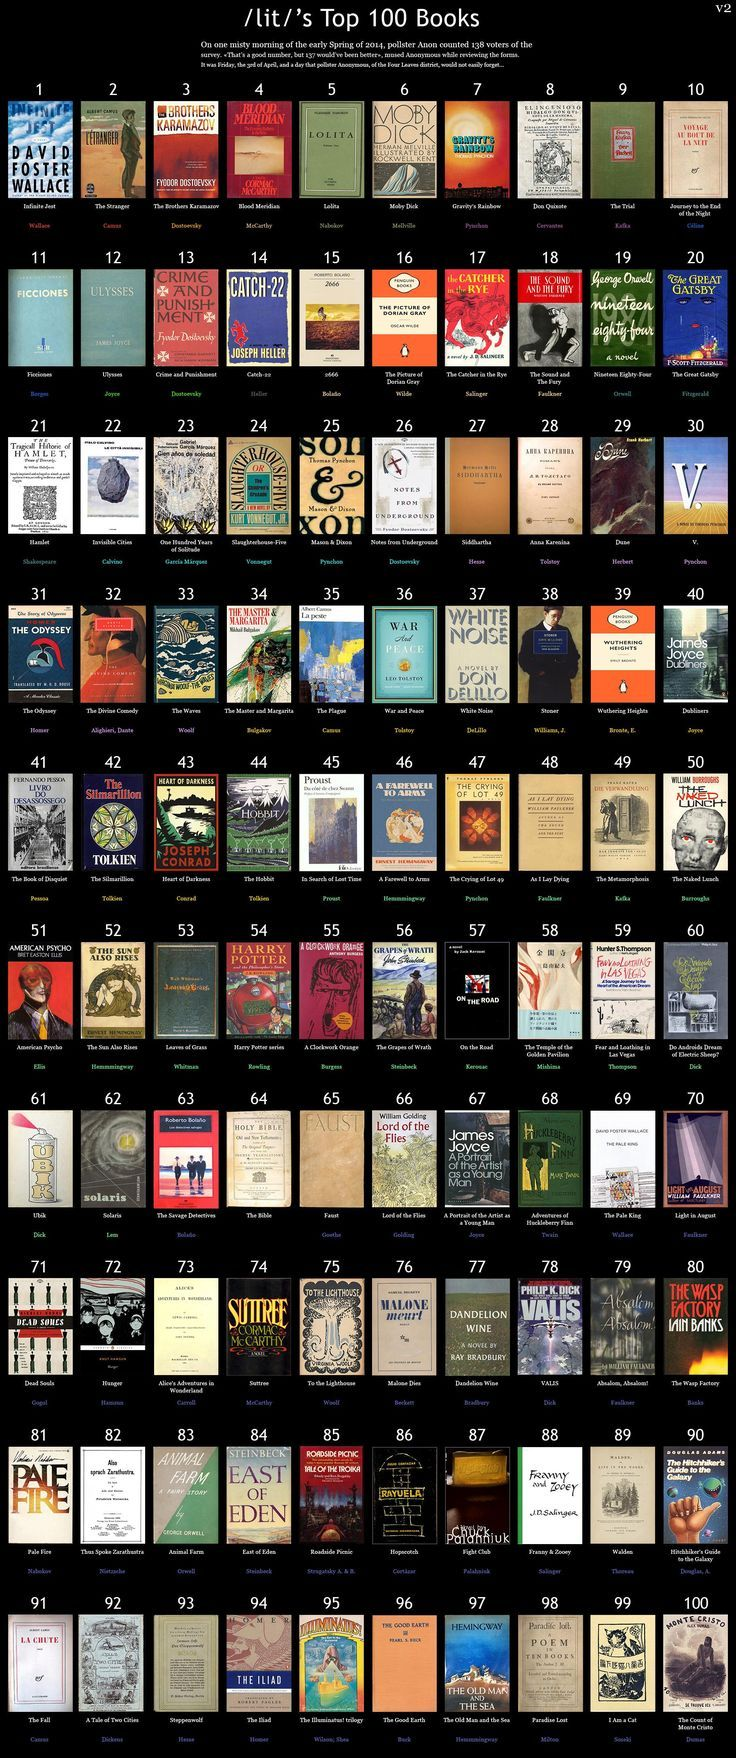 /lit/'s Top 100 Books